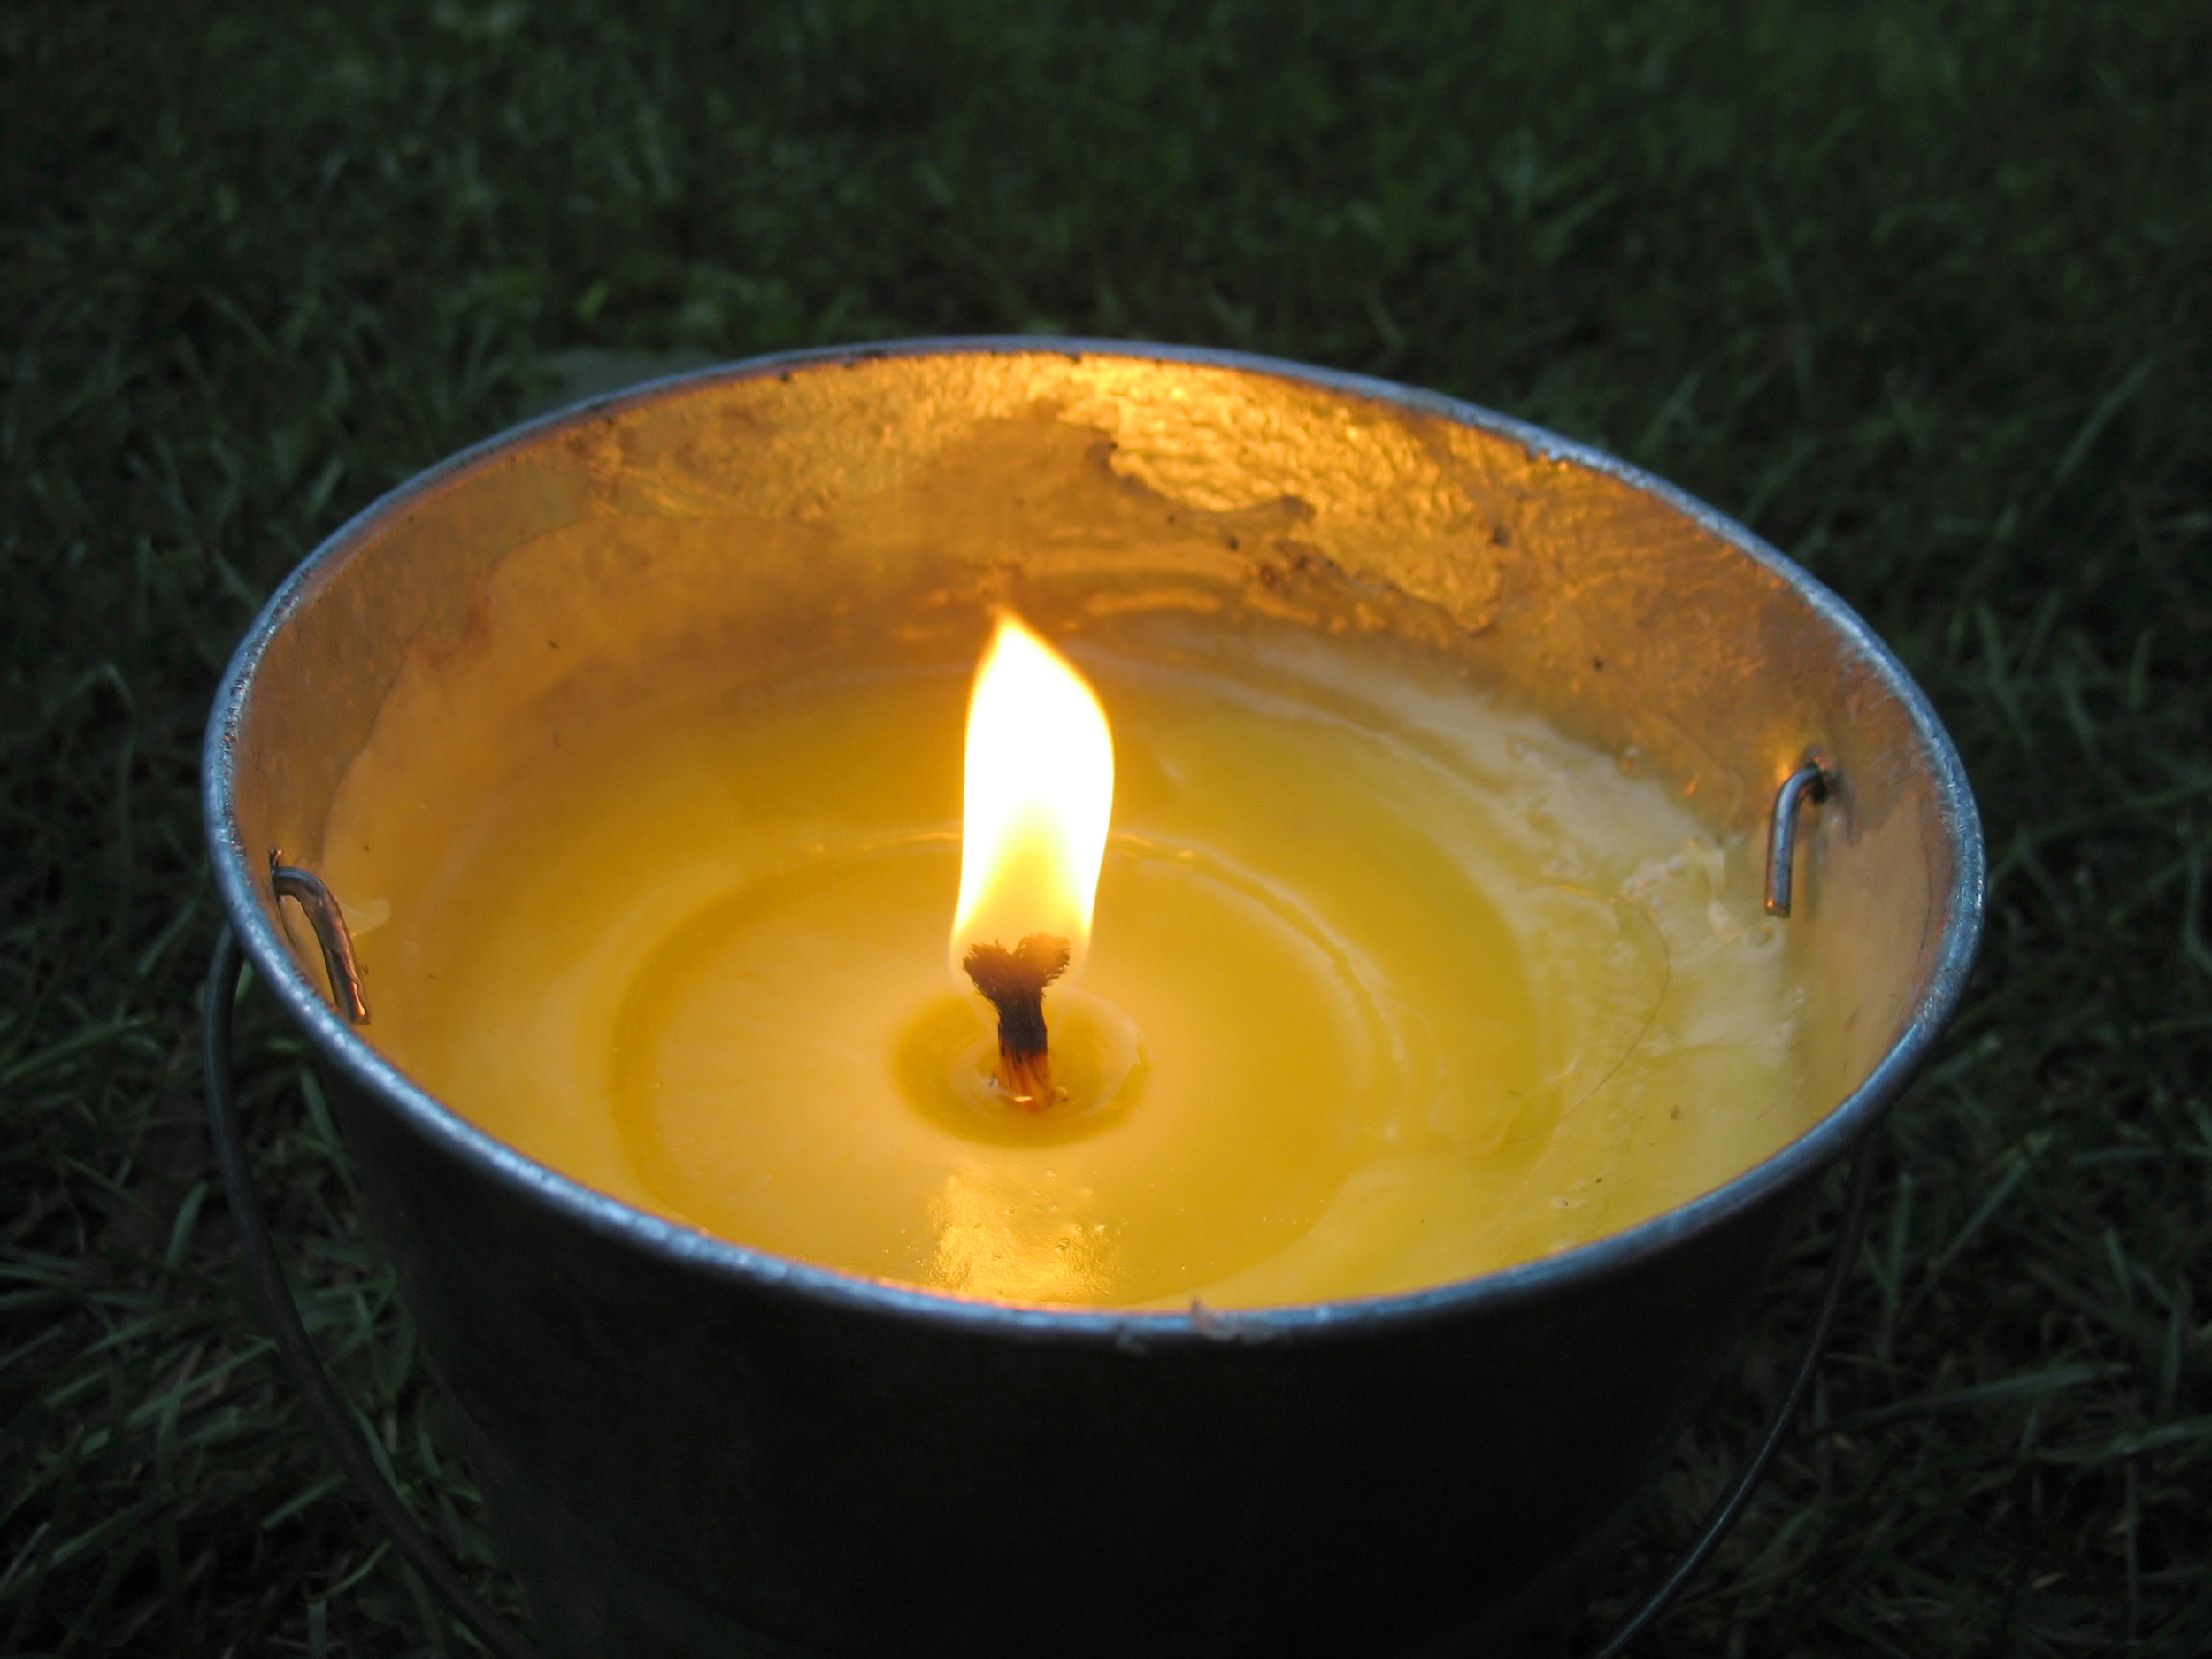 a-yellow-citronella-bucket-candle-perfect-for-those-summertime-evenings-to-keep-the-mosquitos-away_BKnxRgKCHs.jpg